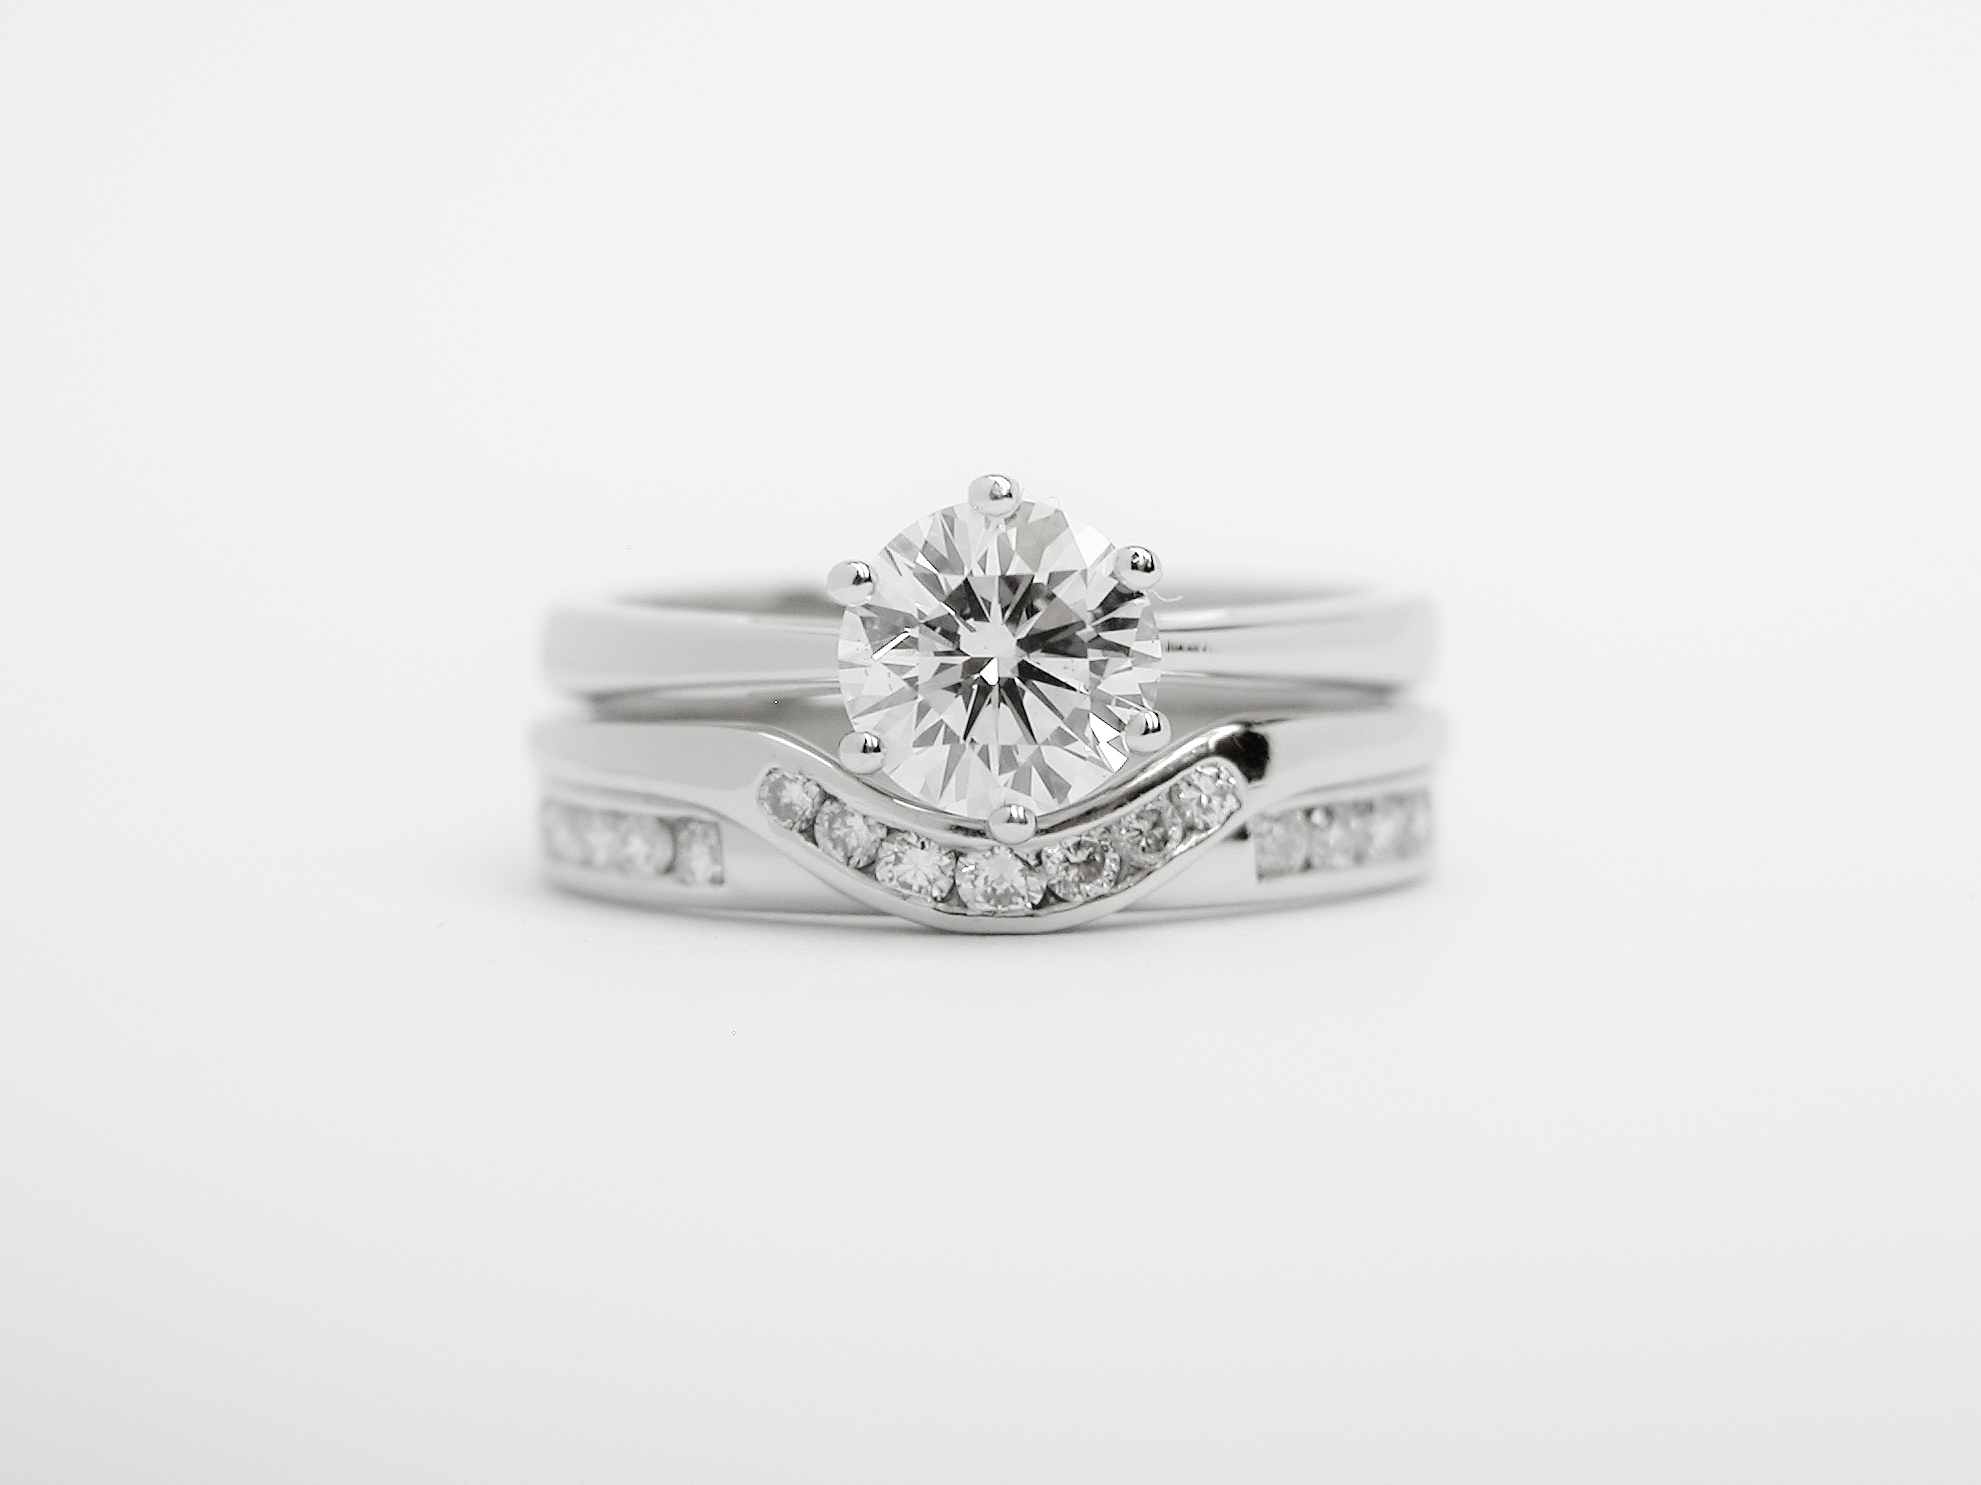 'Collar style' diamond set platinum wedding ring shaped to fit with a single stone straight diamond engagement ring.